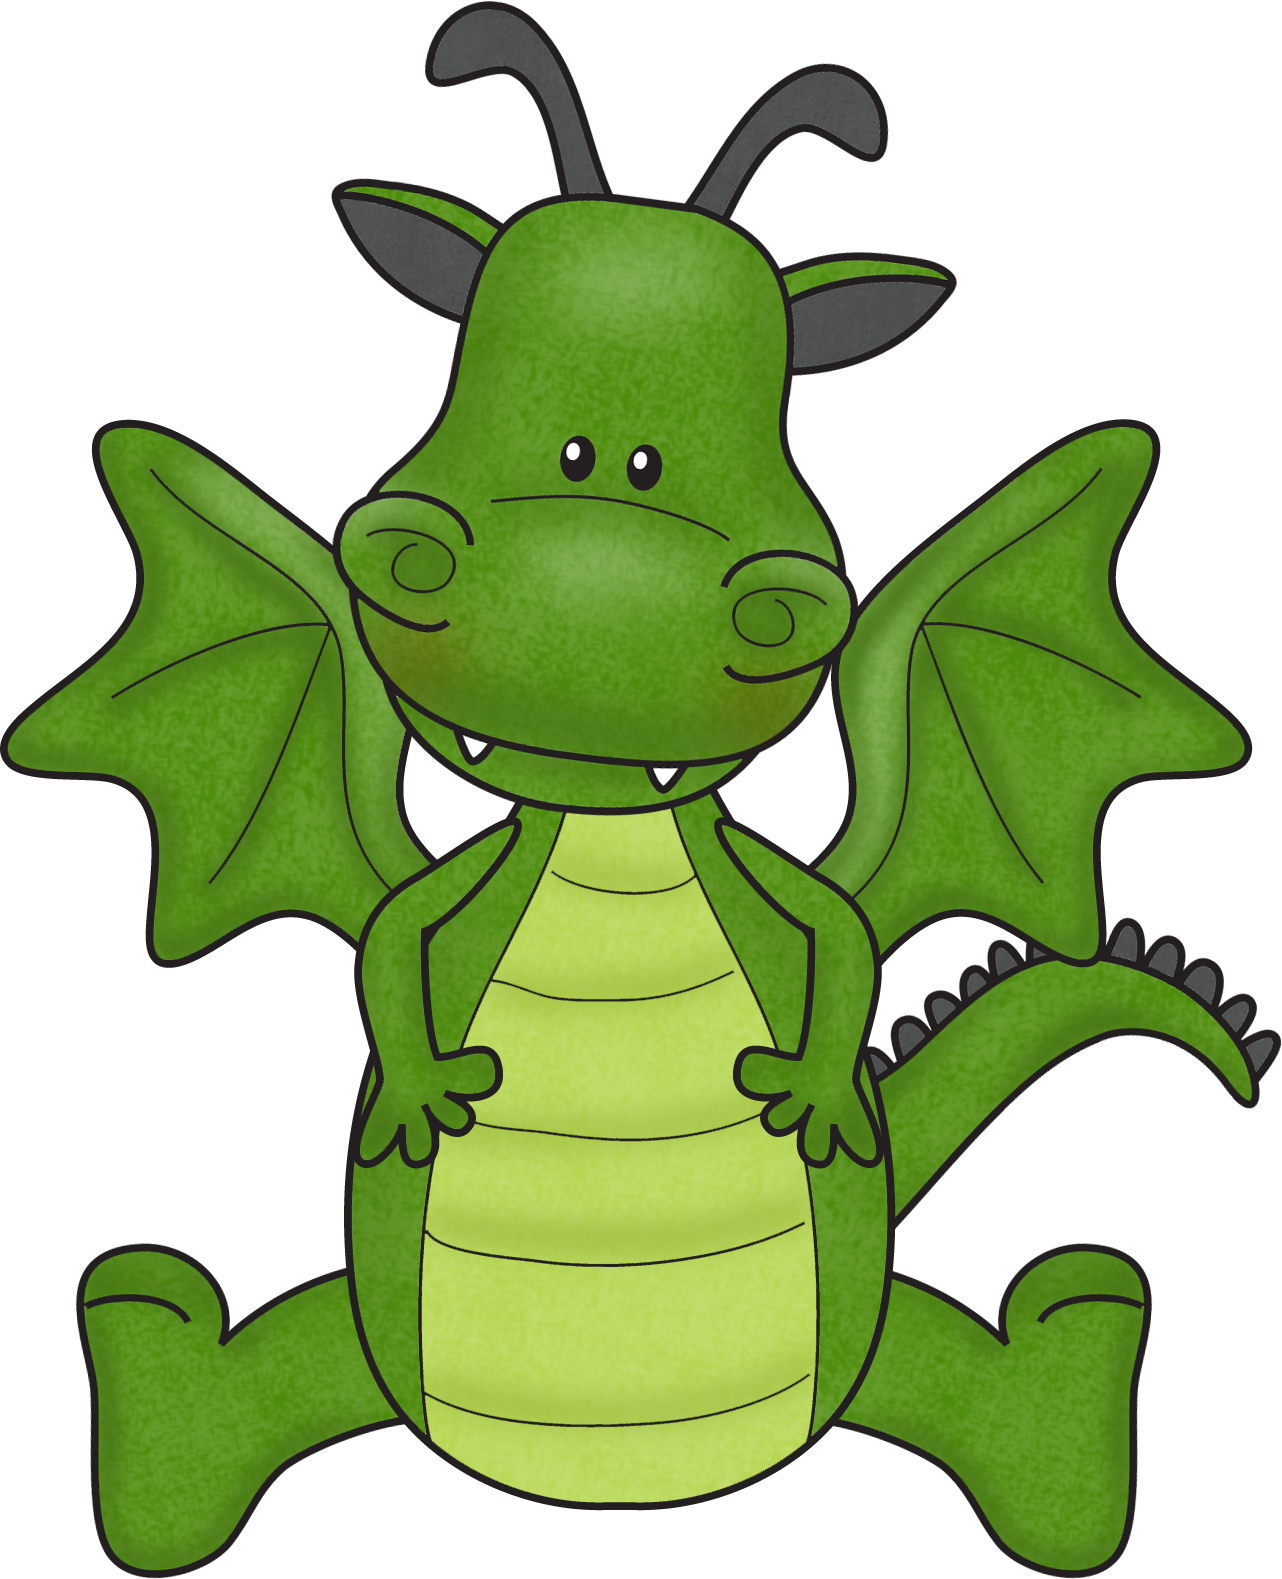 Dragon clip puff the magic. Image transparent stock